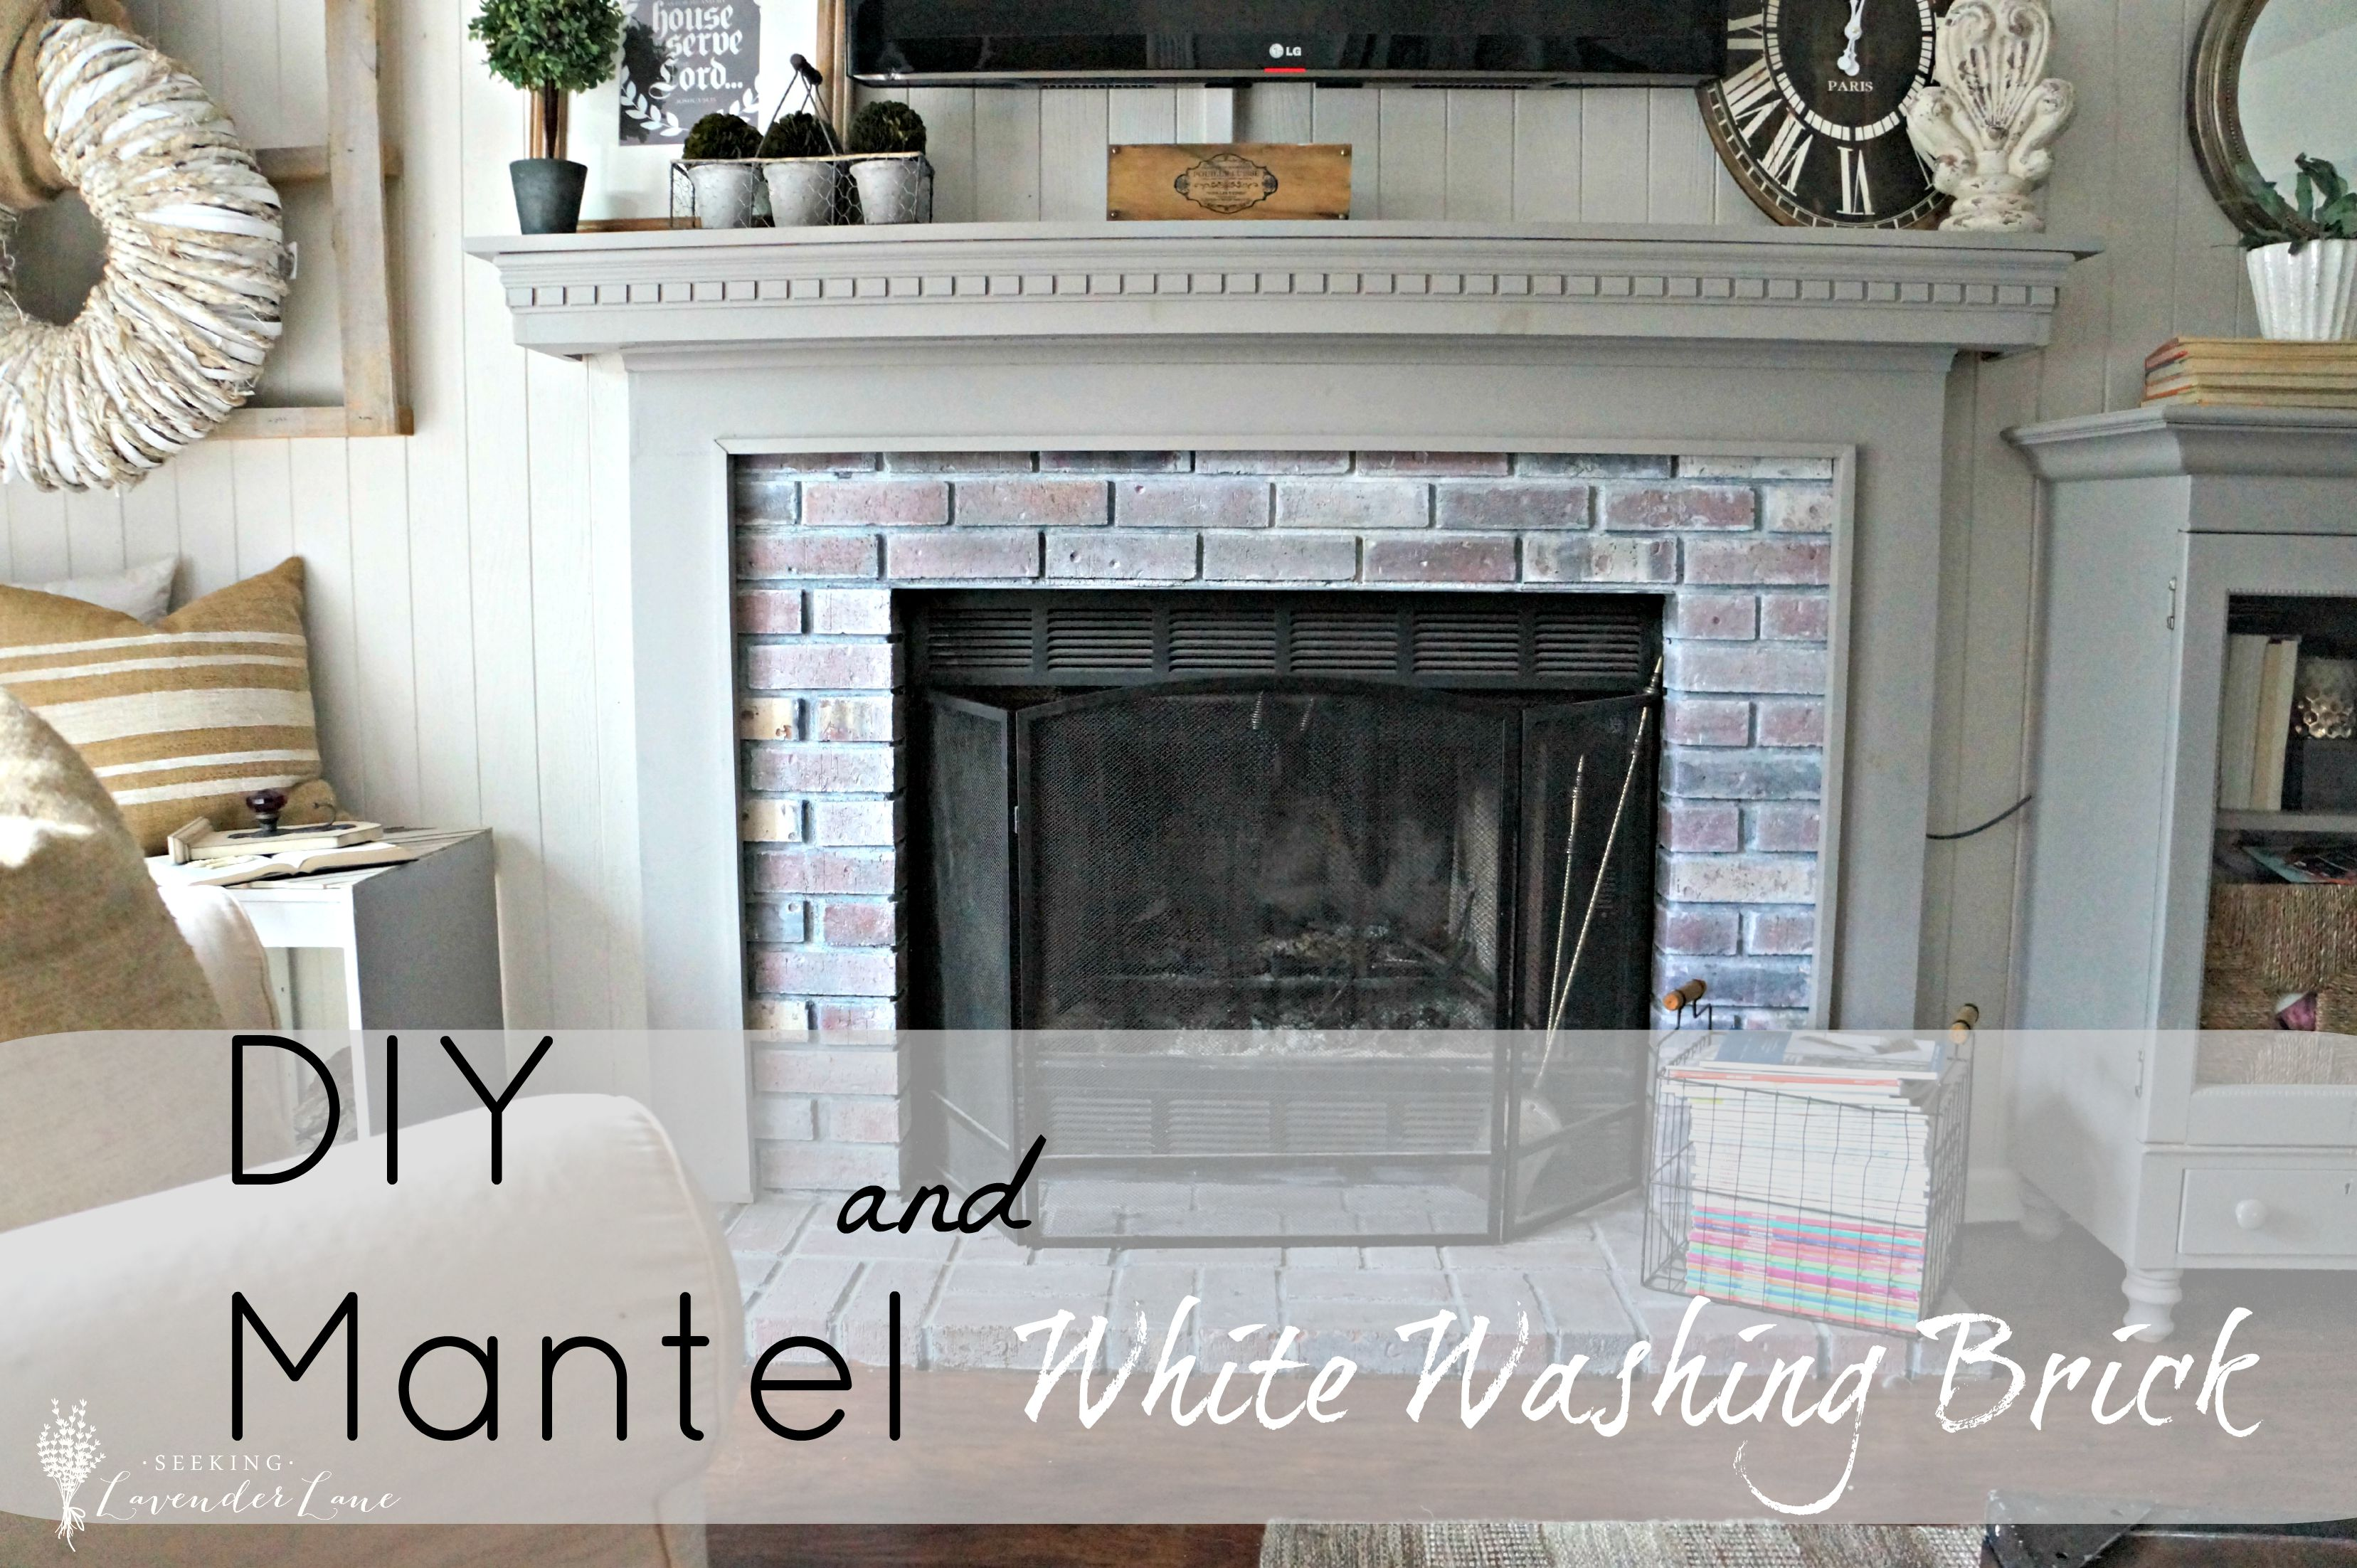 Diy Mantel And White Washing Brick